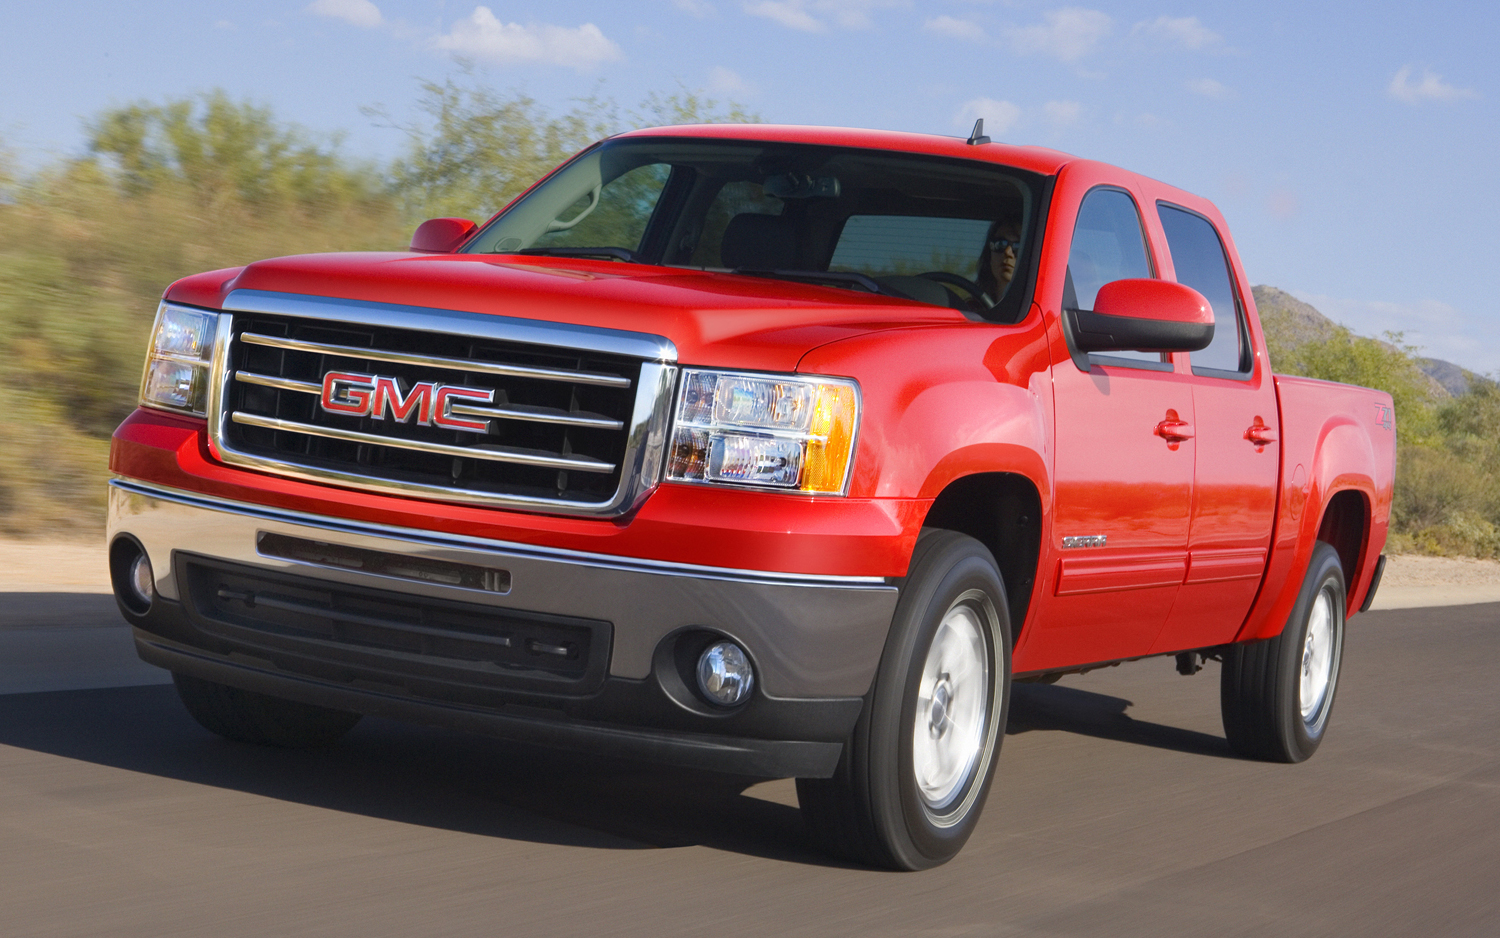 GM Recalls 55,000 Cadillac, Chevrolet, GMC Trucks And SUVs